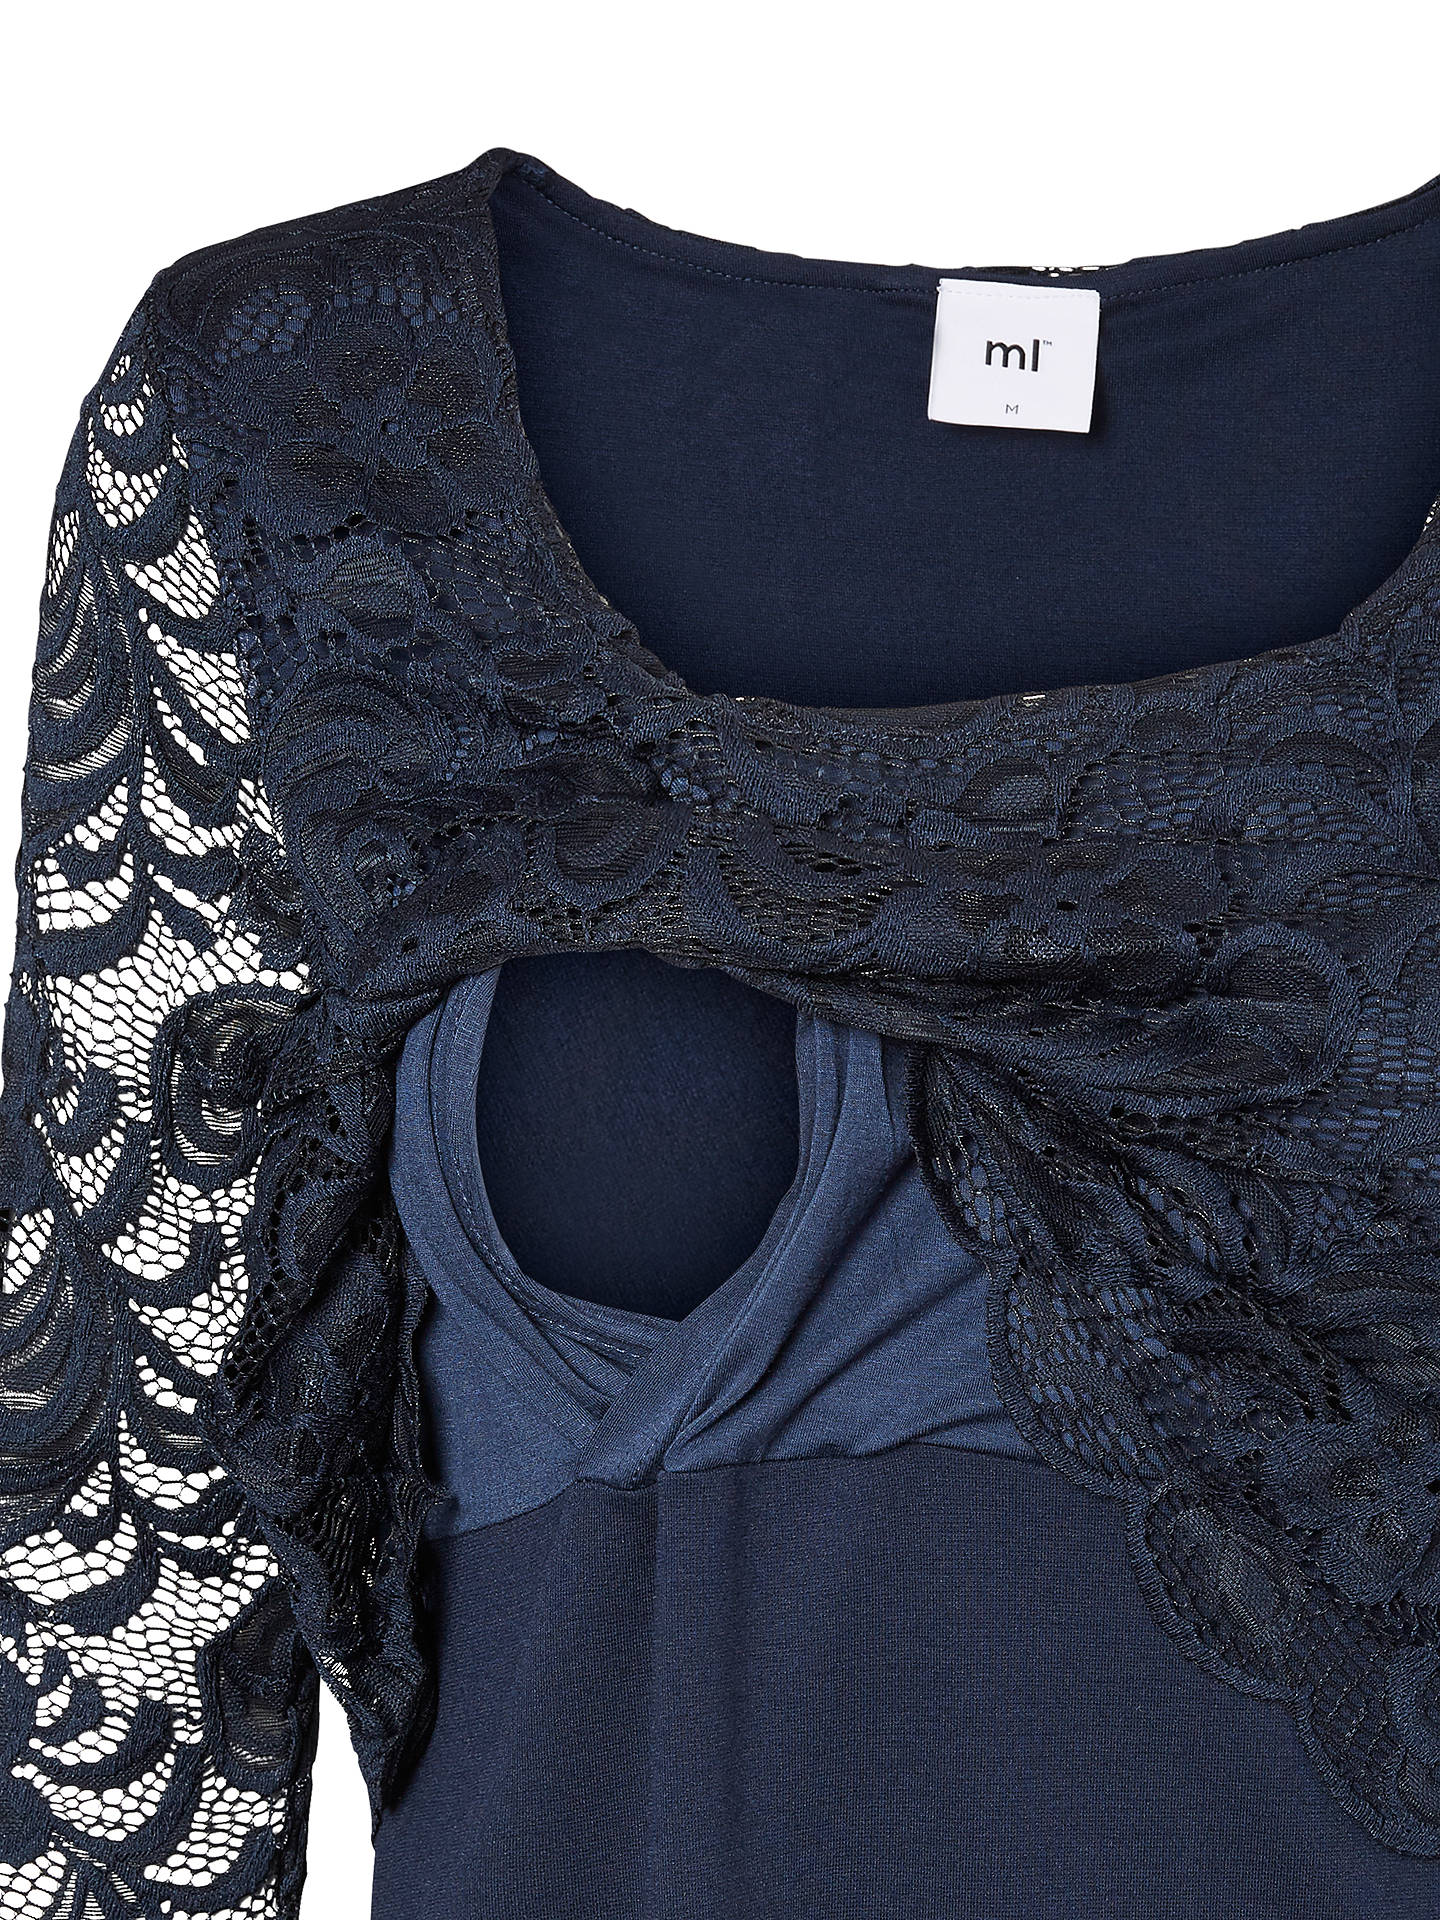 7bd7c44516a Buy Mamalicious June Lace Overlay Maternity Nursing Dress, Navy, S Online  at johnlewis.